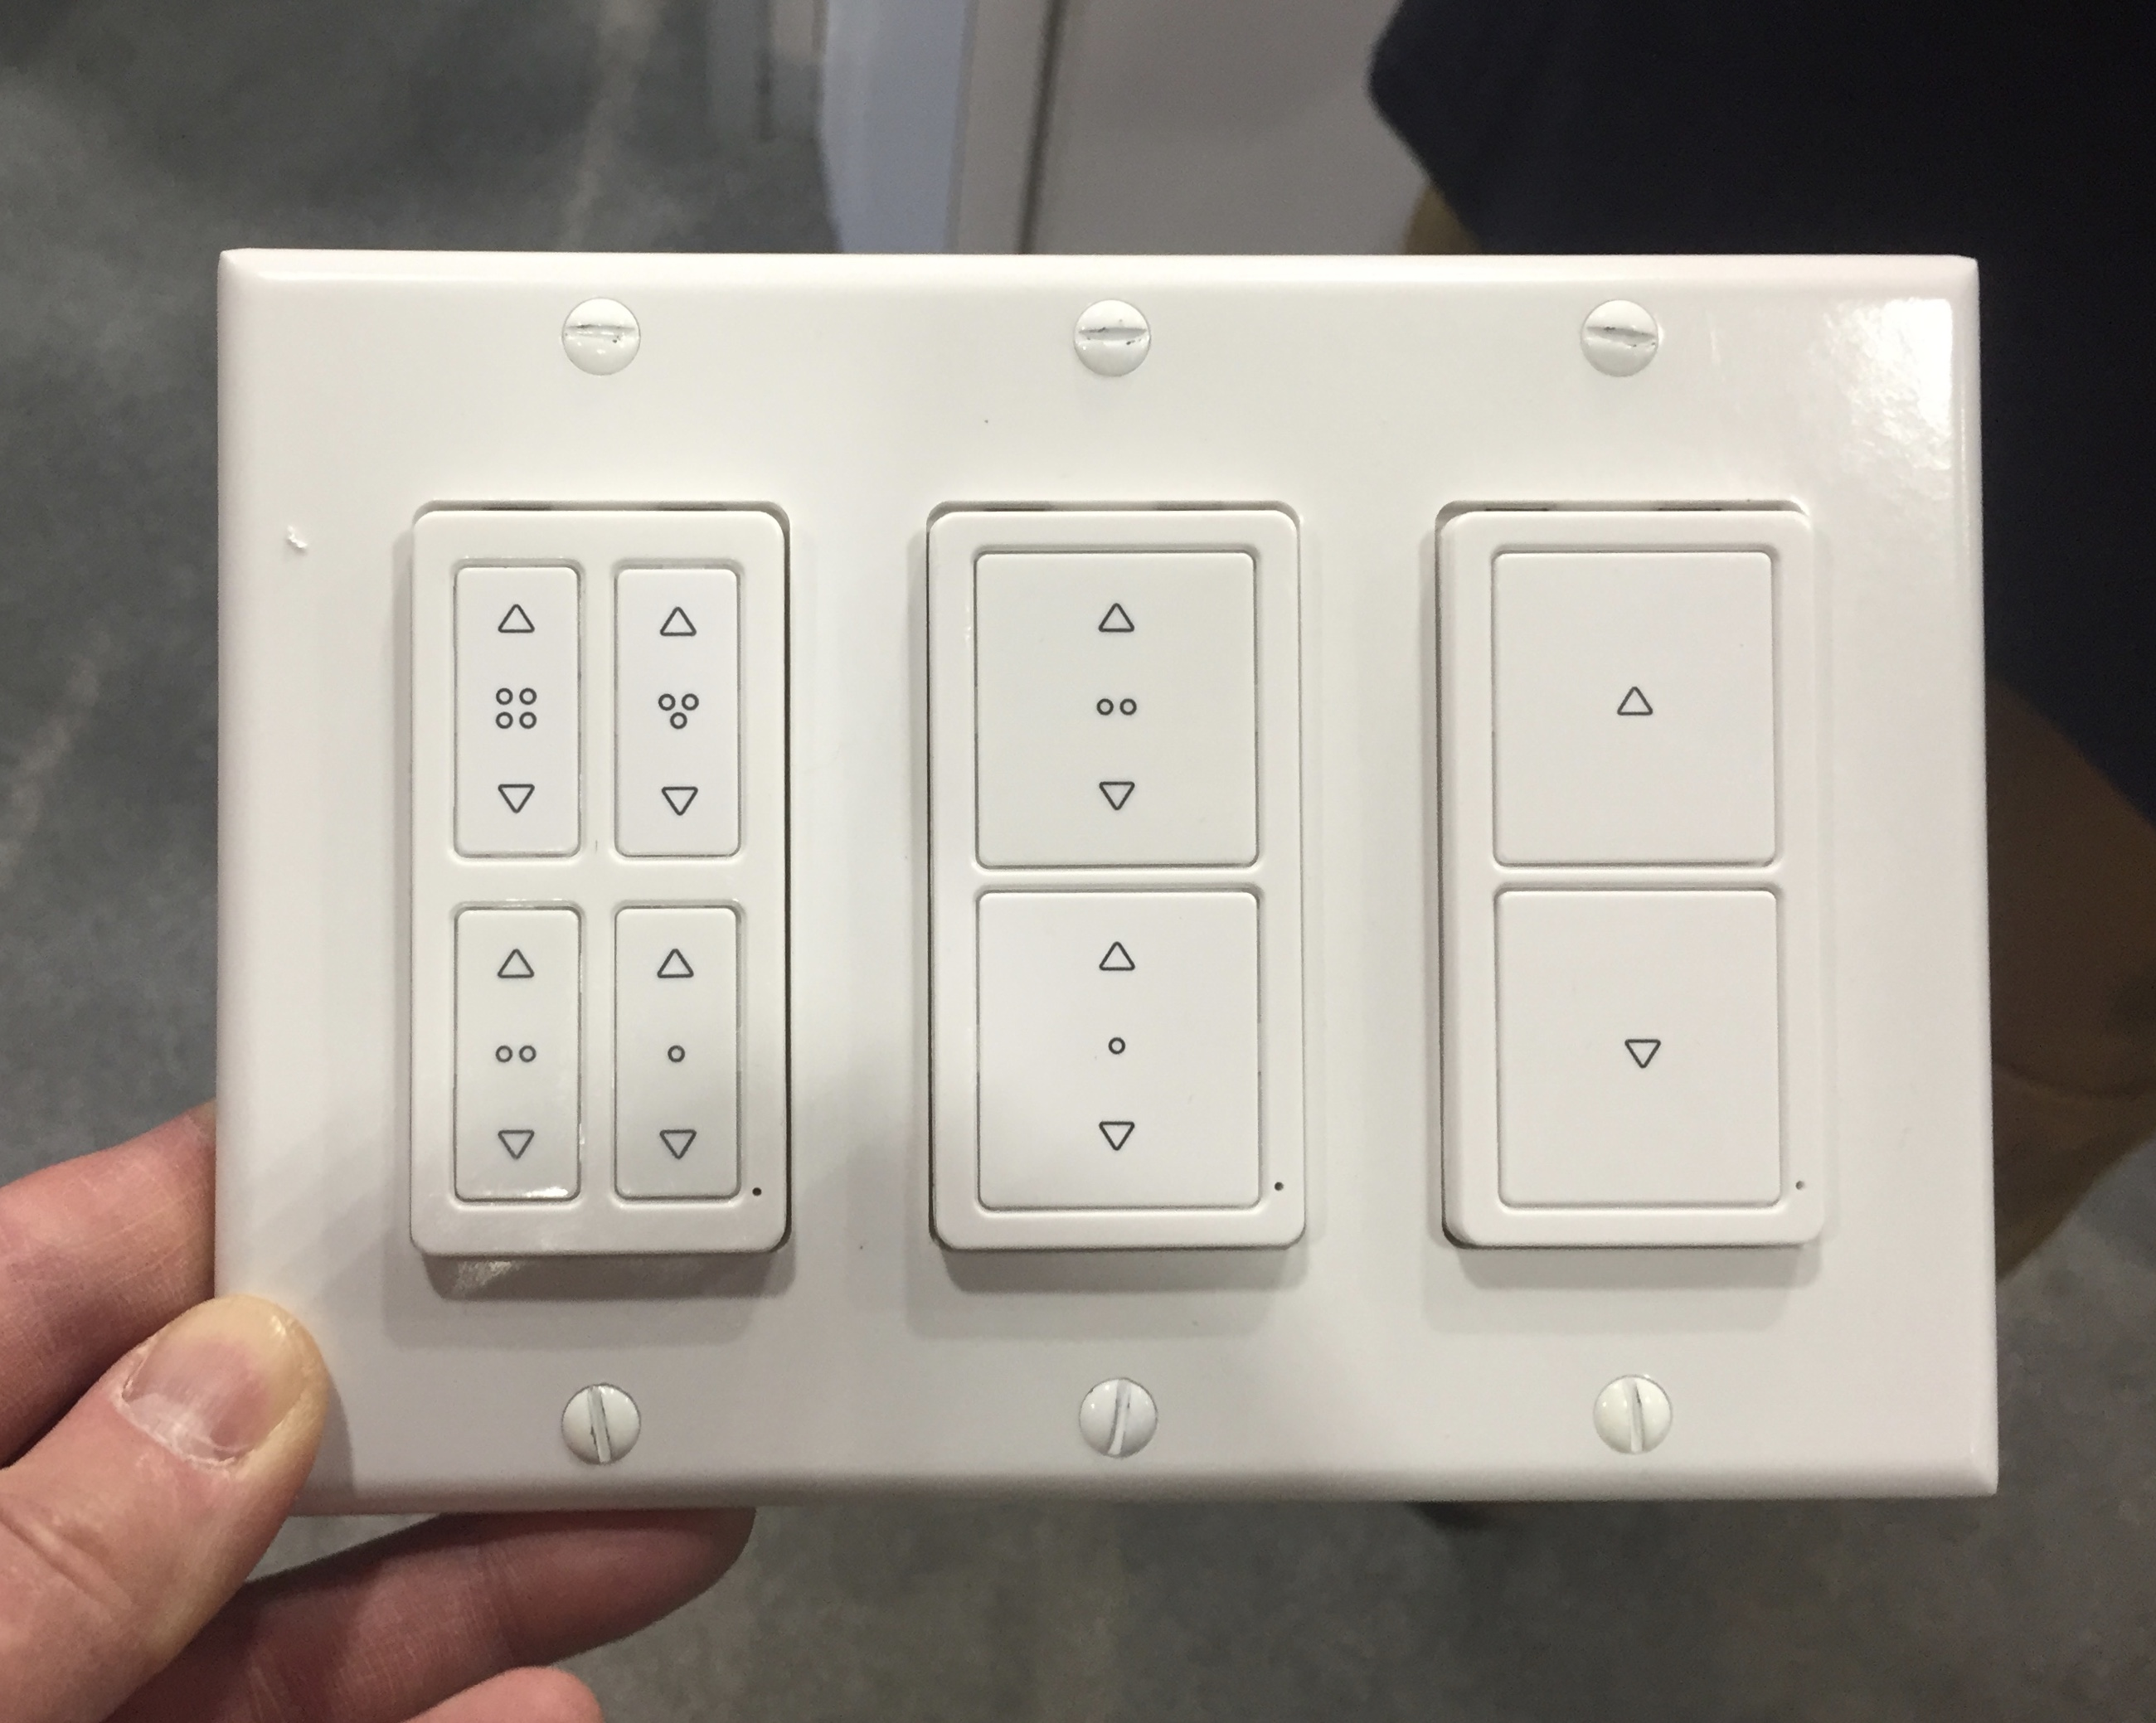 Ge Jasco Shows Off 5 New Z Wave Smart Remotes Tech Tips And Toys Switch Wiring The Remote Switches Look A Lot Like Lutron Pico Are Same Size Shape As Decor Light